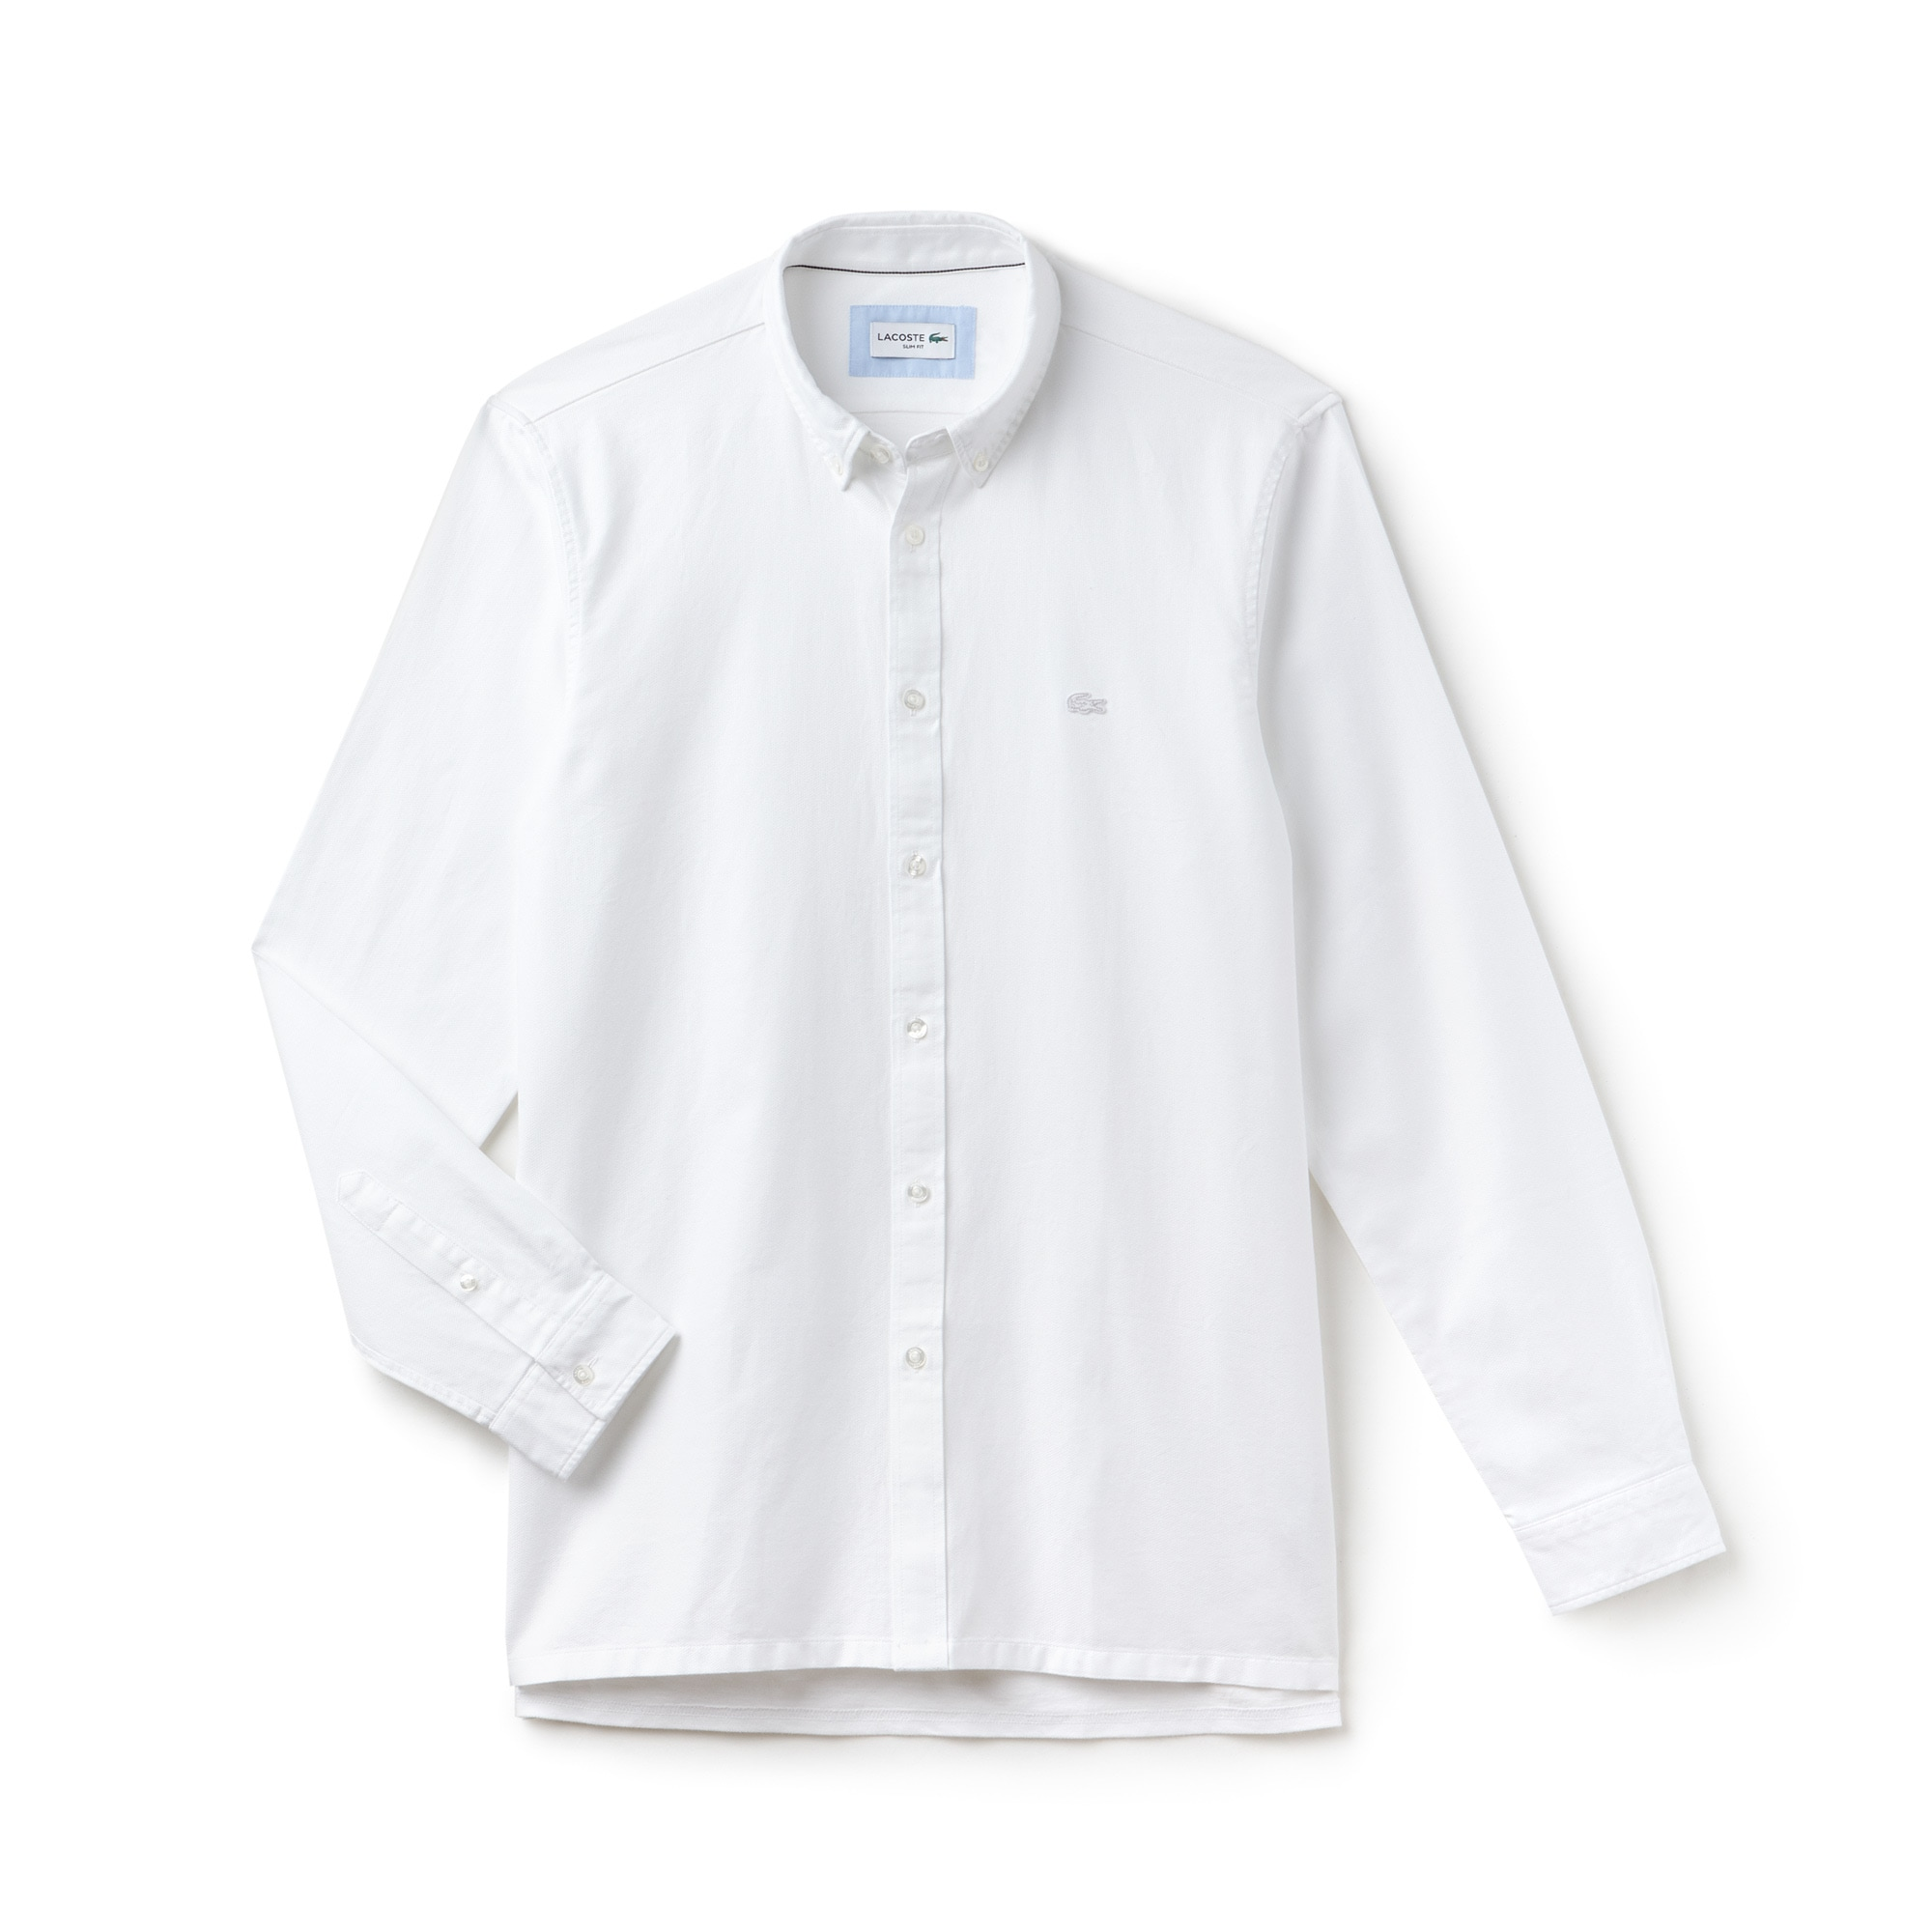 Men's Slim Fit Lacoste MOTION Cotton Piqué Shirt